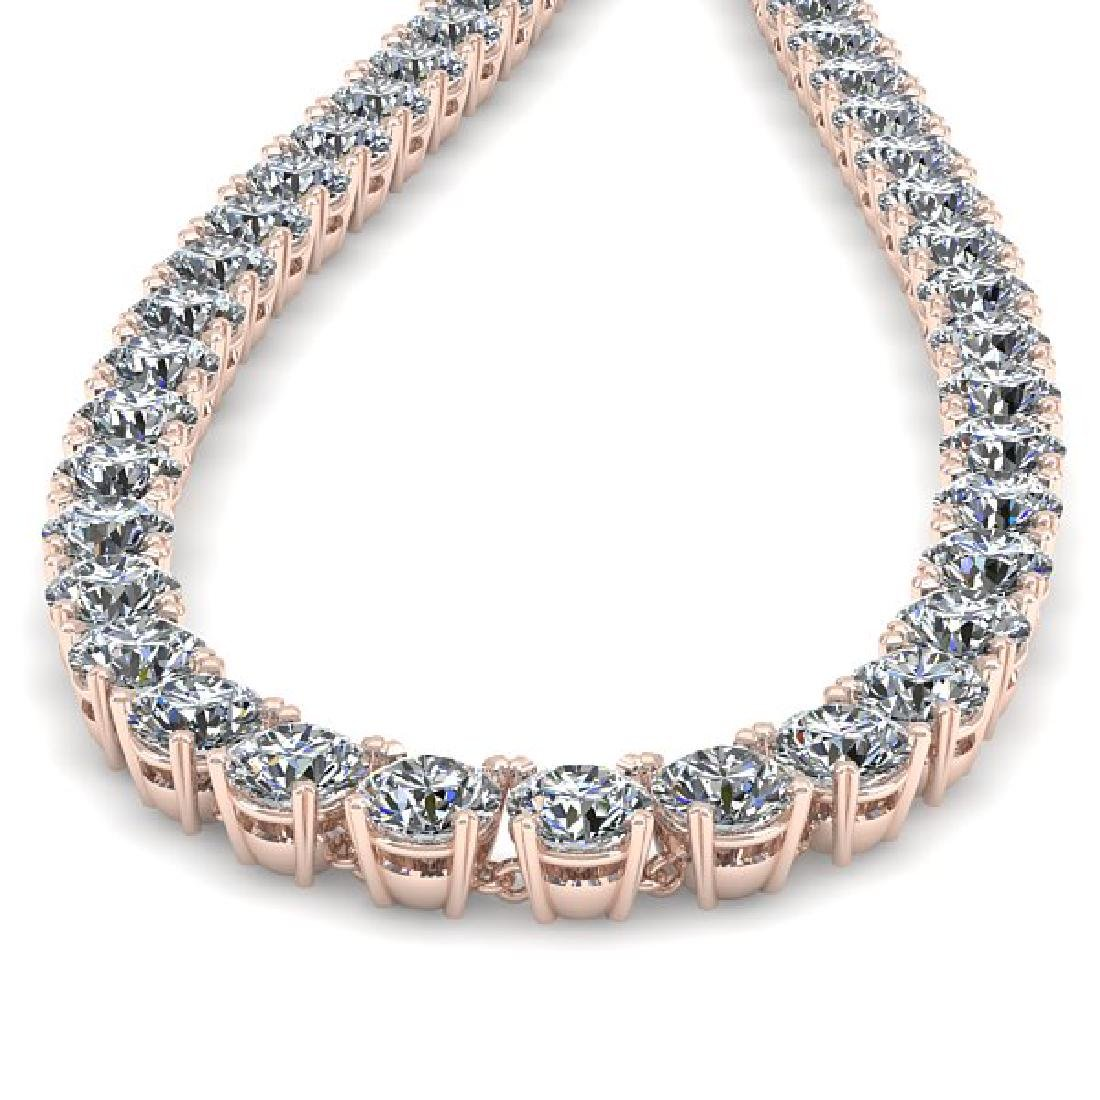 38 CTW Certified SI Diamond Necklace 18K Rose Gold - 2